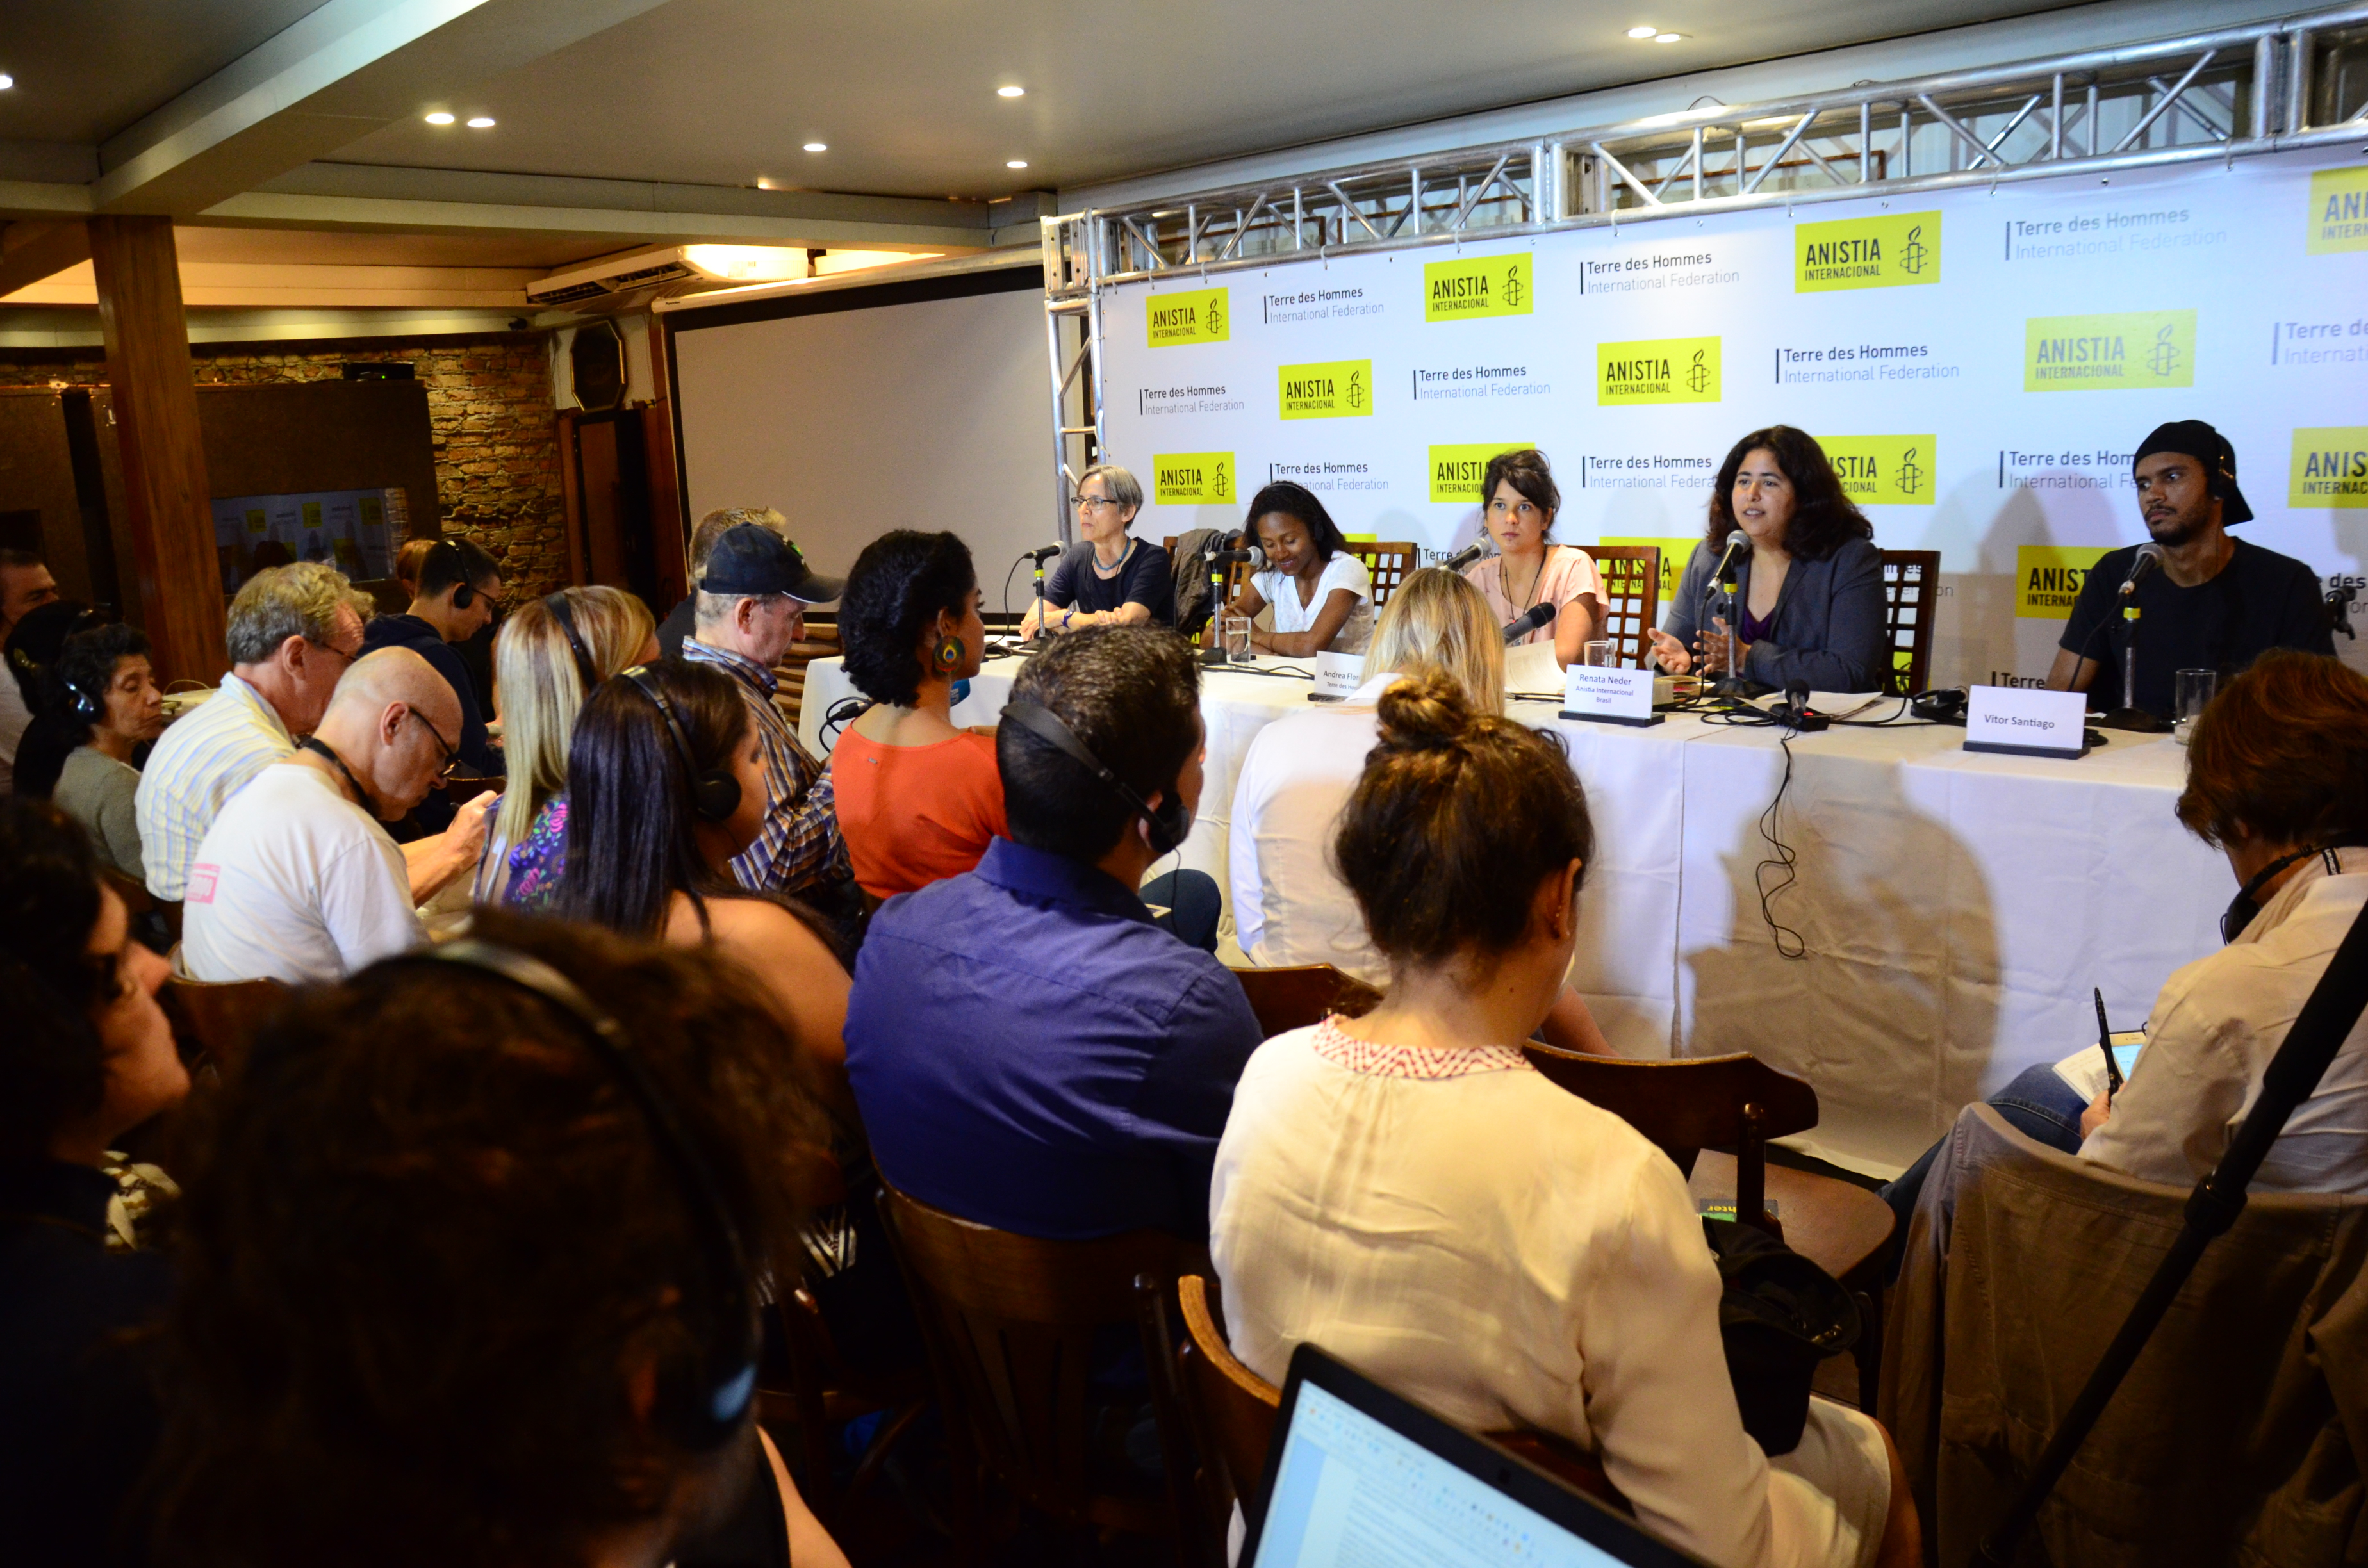 Rio's child rights abuses make global headlines